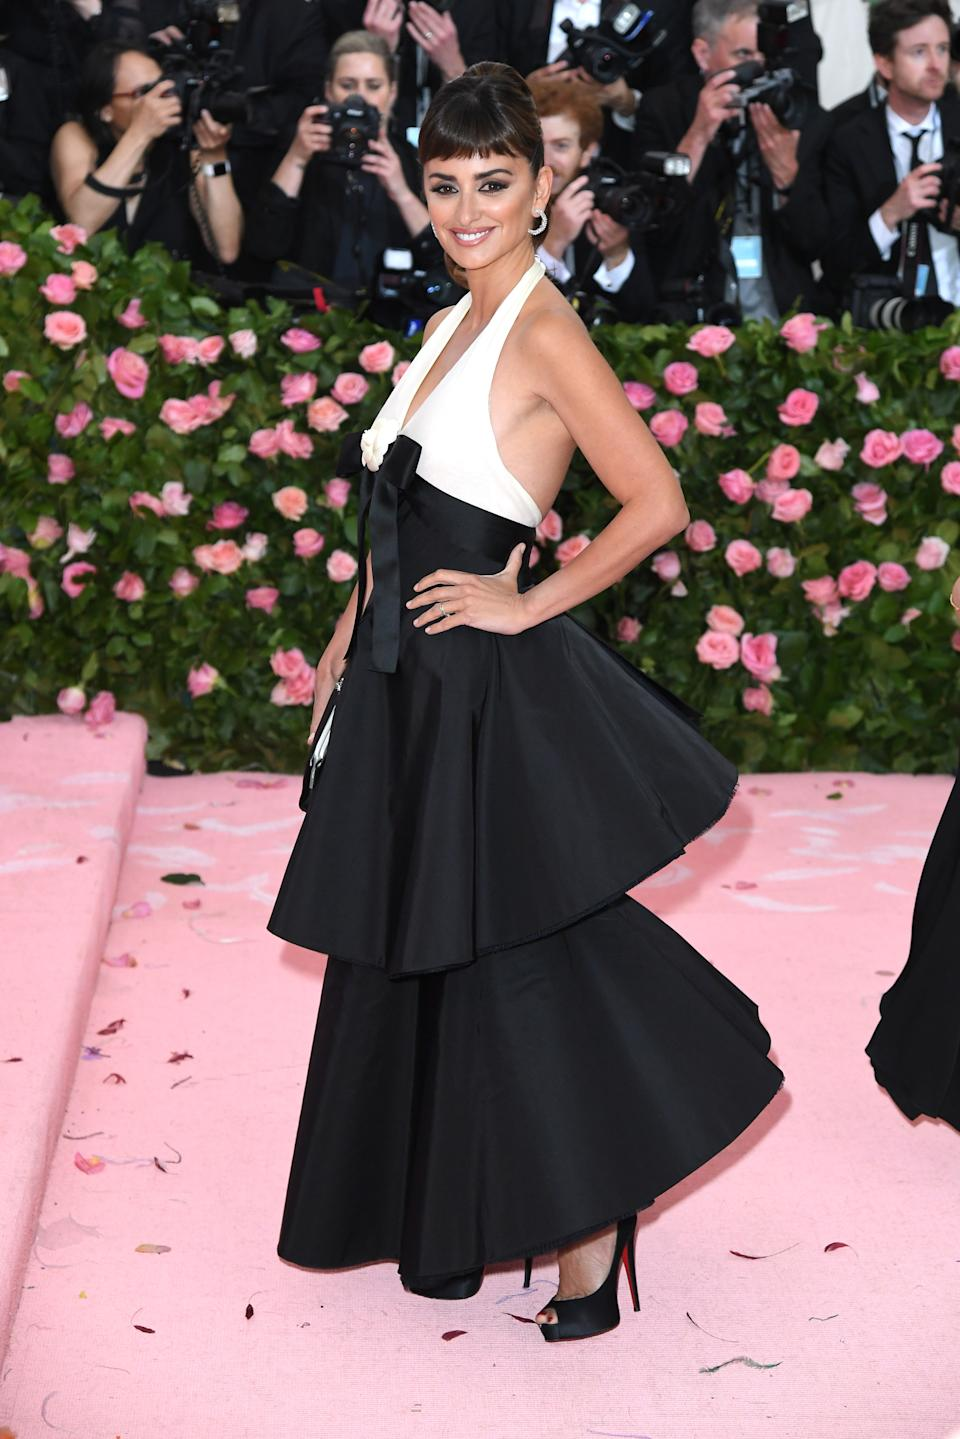 """<h1 class=""""title"""">Penélope Cruz in Chanel and Christian Louboutin shoes wearing Atelier Swarovski jewelry</h1><cite class=""""credit"""">Photo: Getty Images</cite>"""